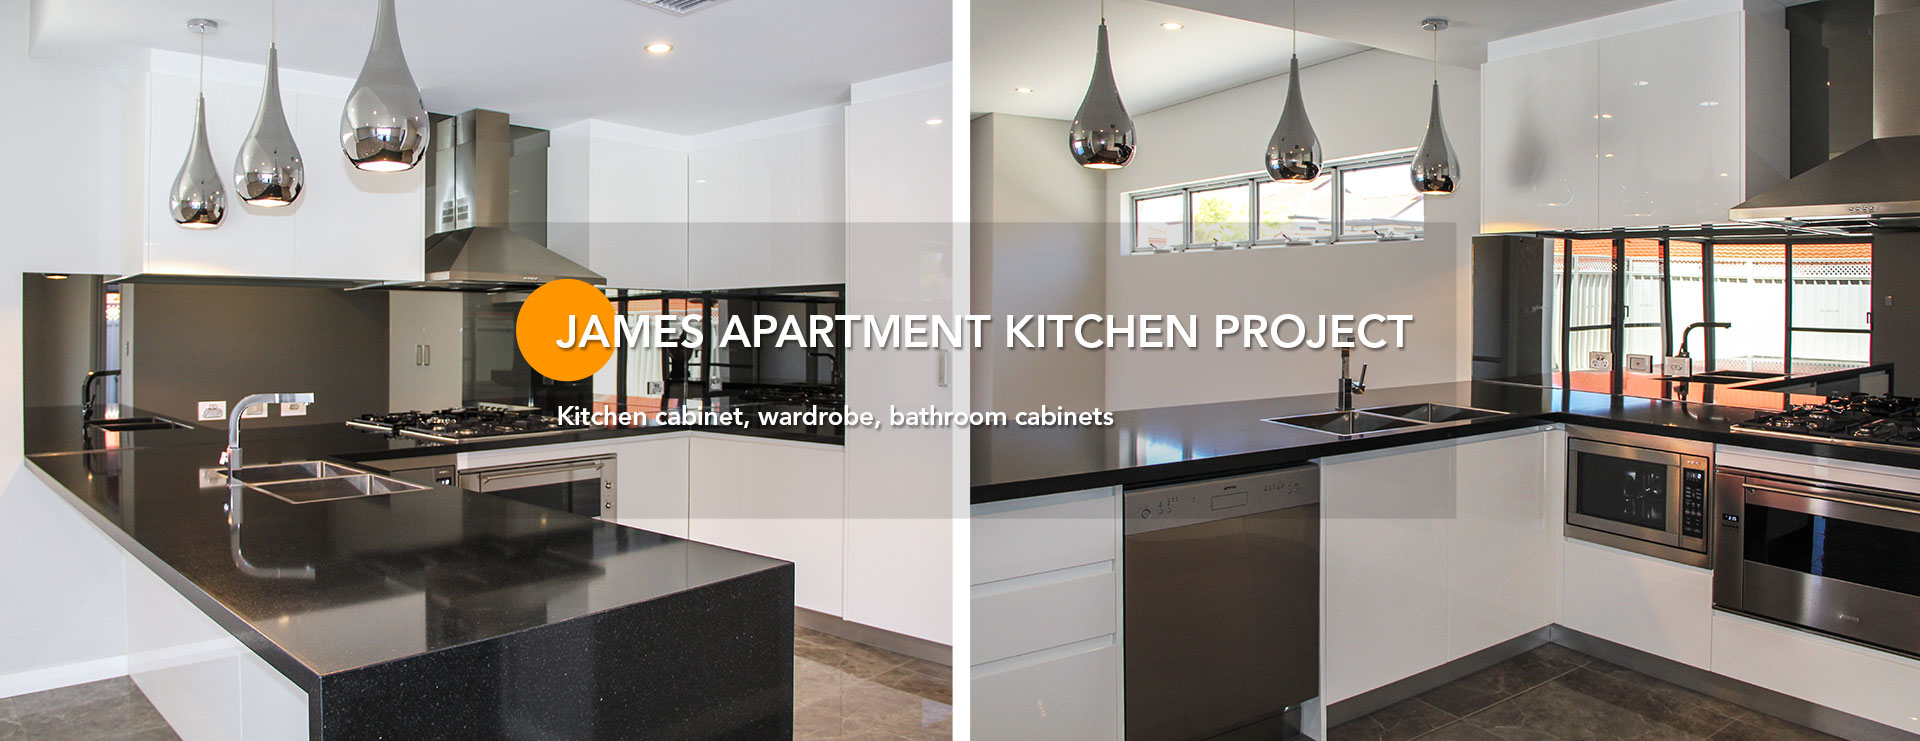 James-Australia-Apartment-Kitchen-Project (1)